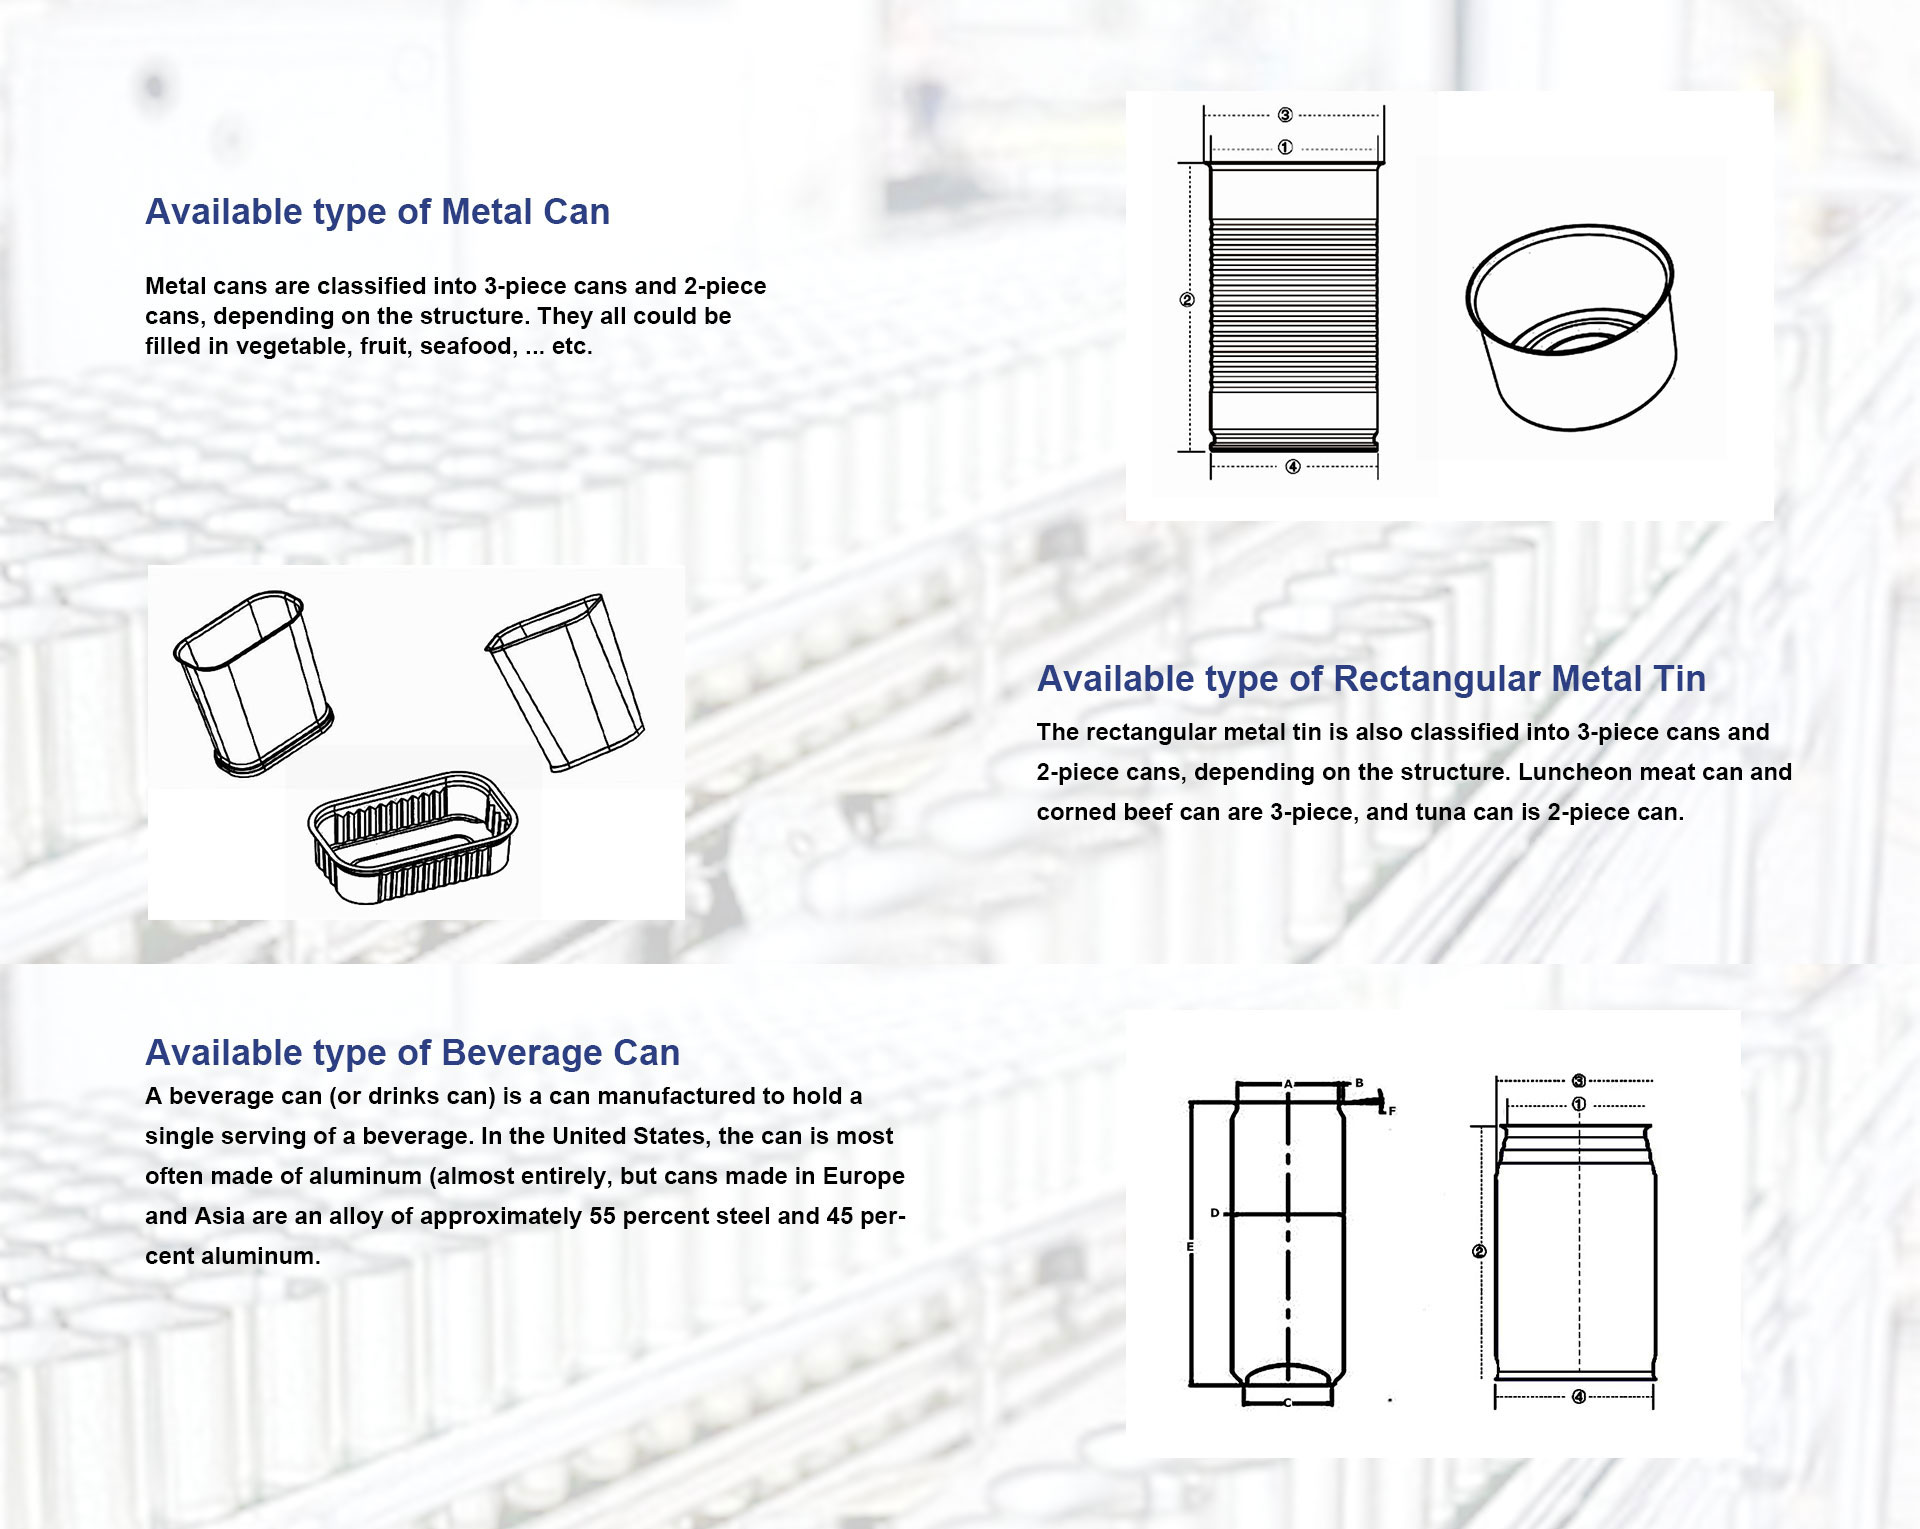 Beverage Tin Can with 55 percent steel and 45 percent aluminum